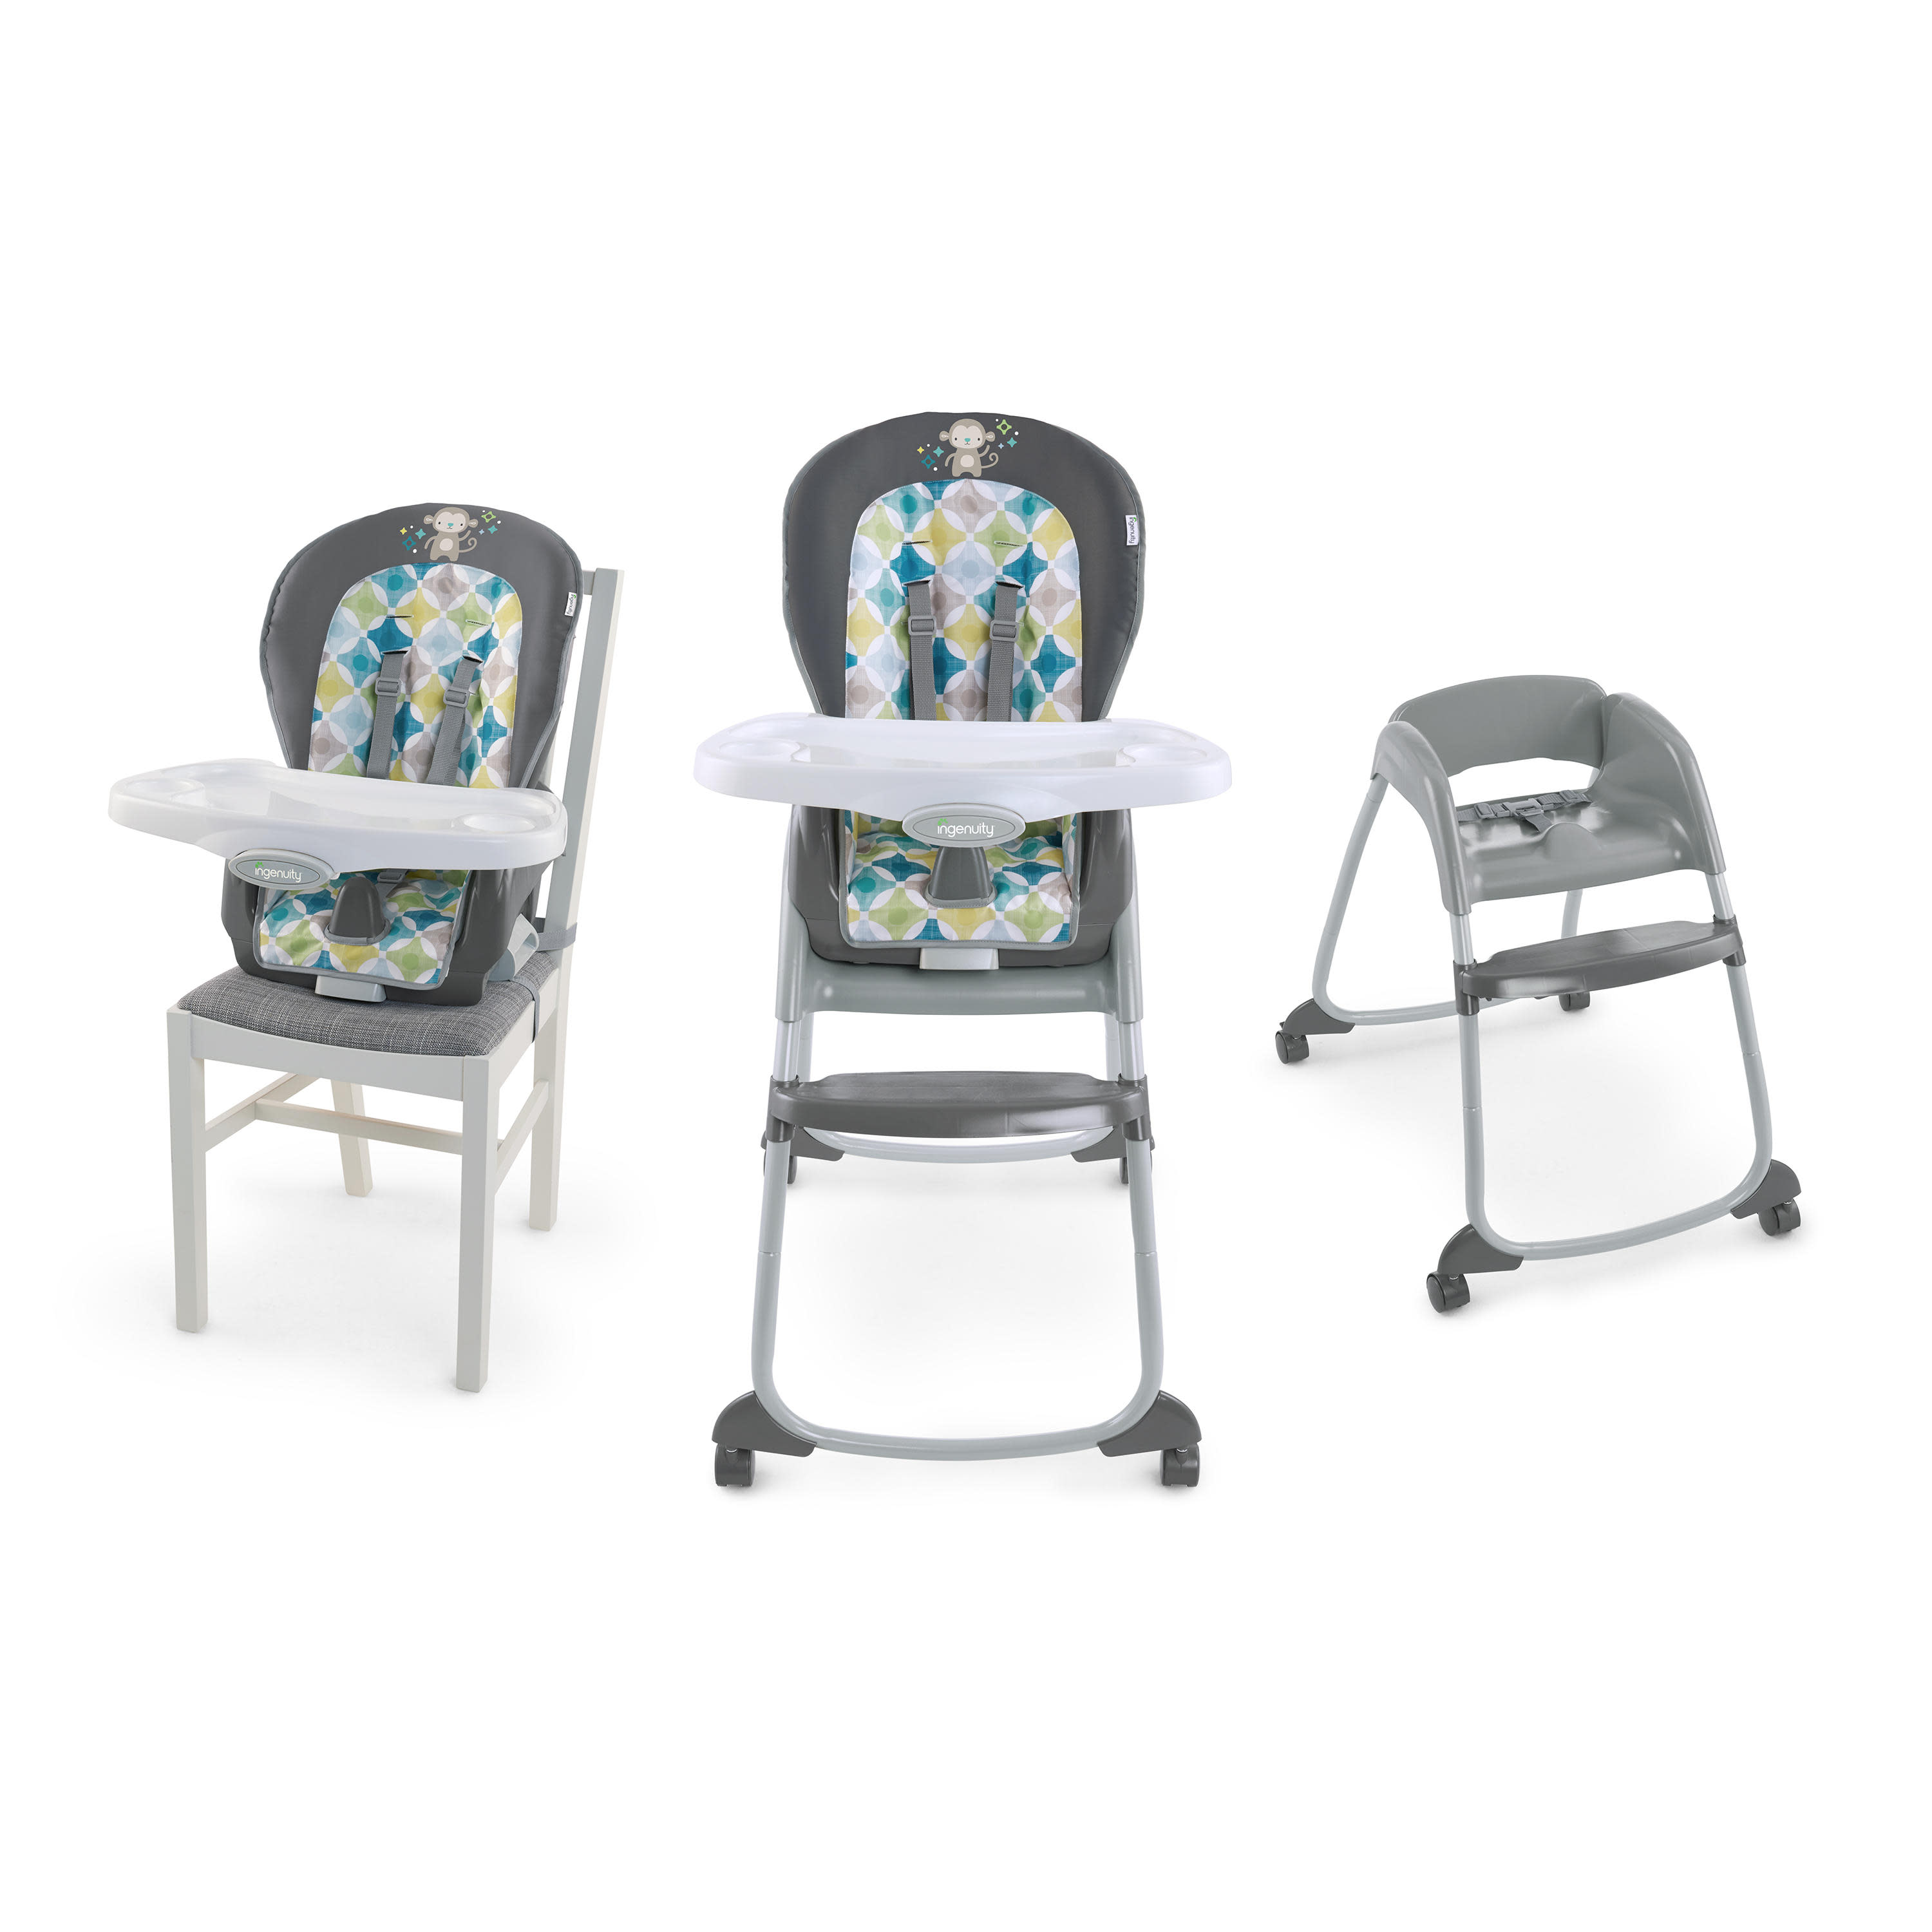 ingenuity high chair 3 in 1 cover light gray covers trio moreland walmart com